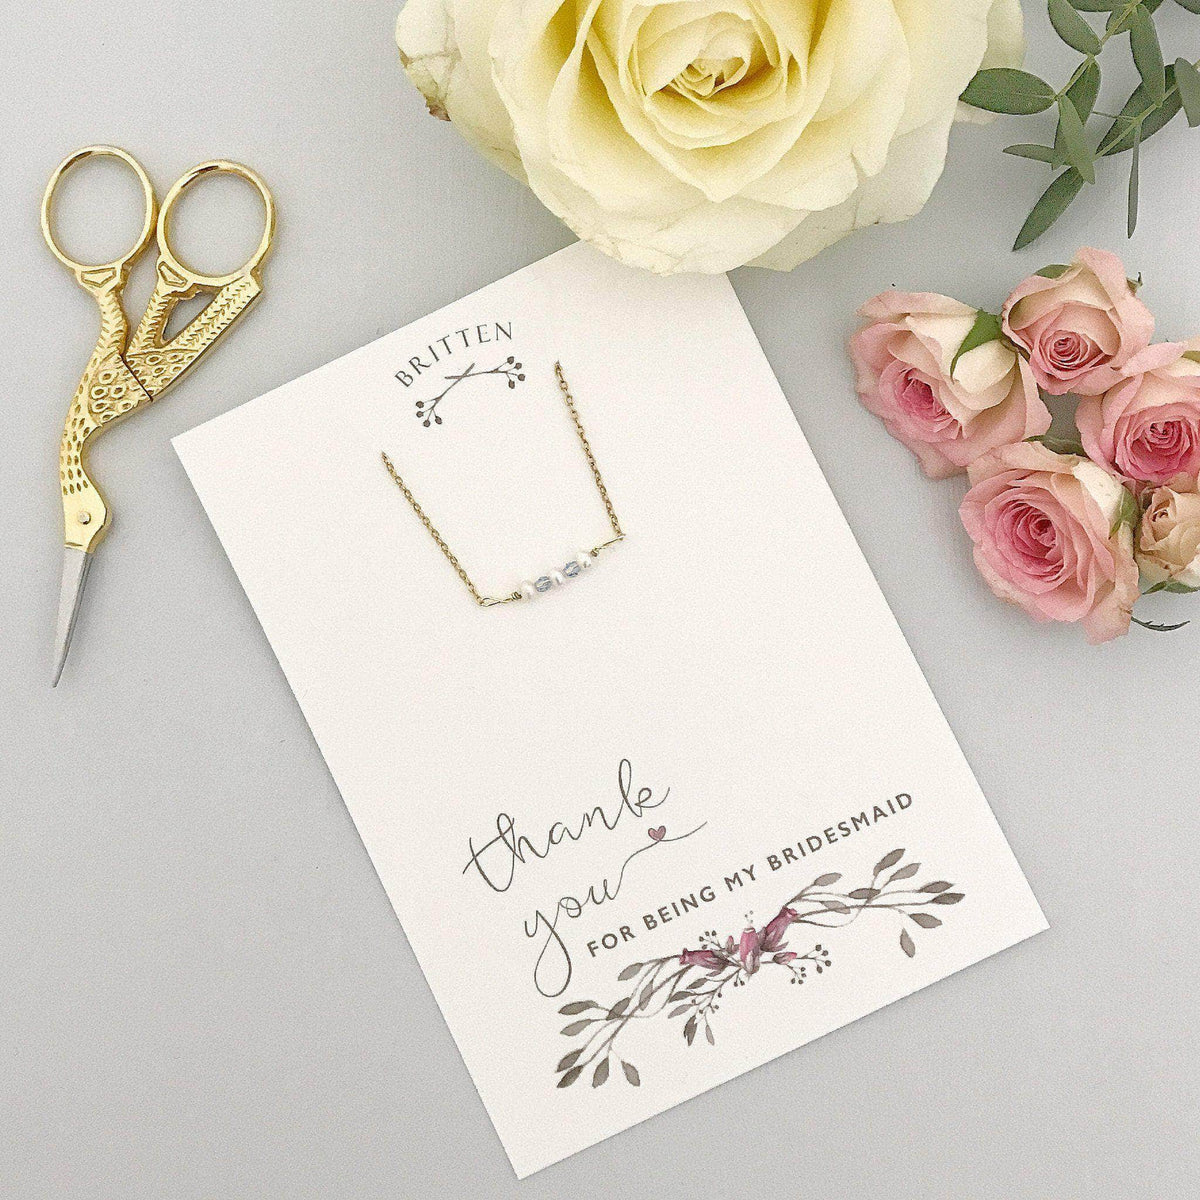 Bridesmaid Gift Gold Bridesmaid 'Thank You' gift gold bracelet - 'Mollie'